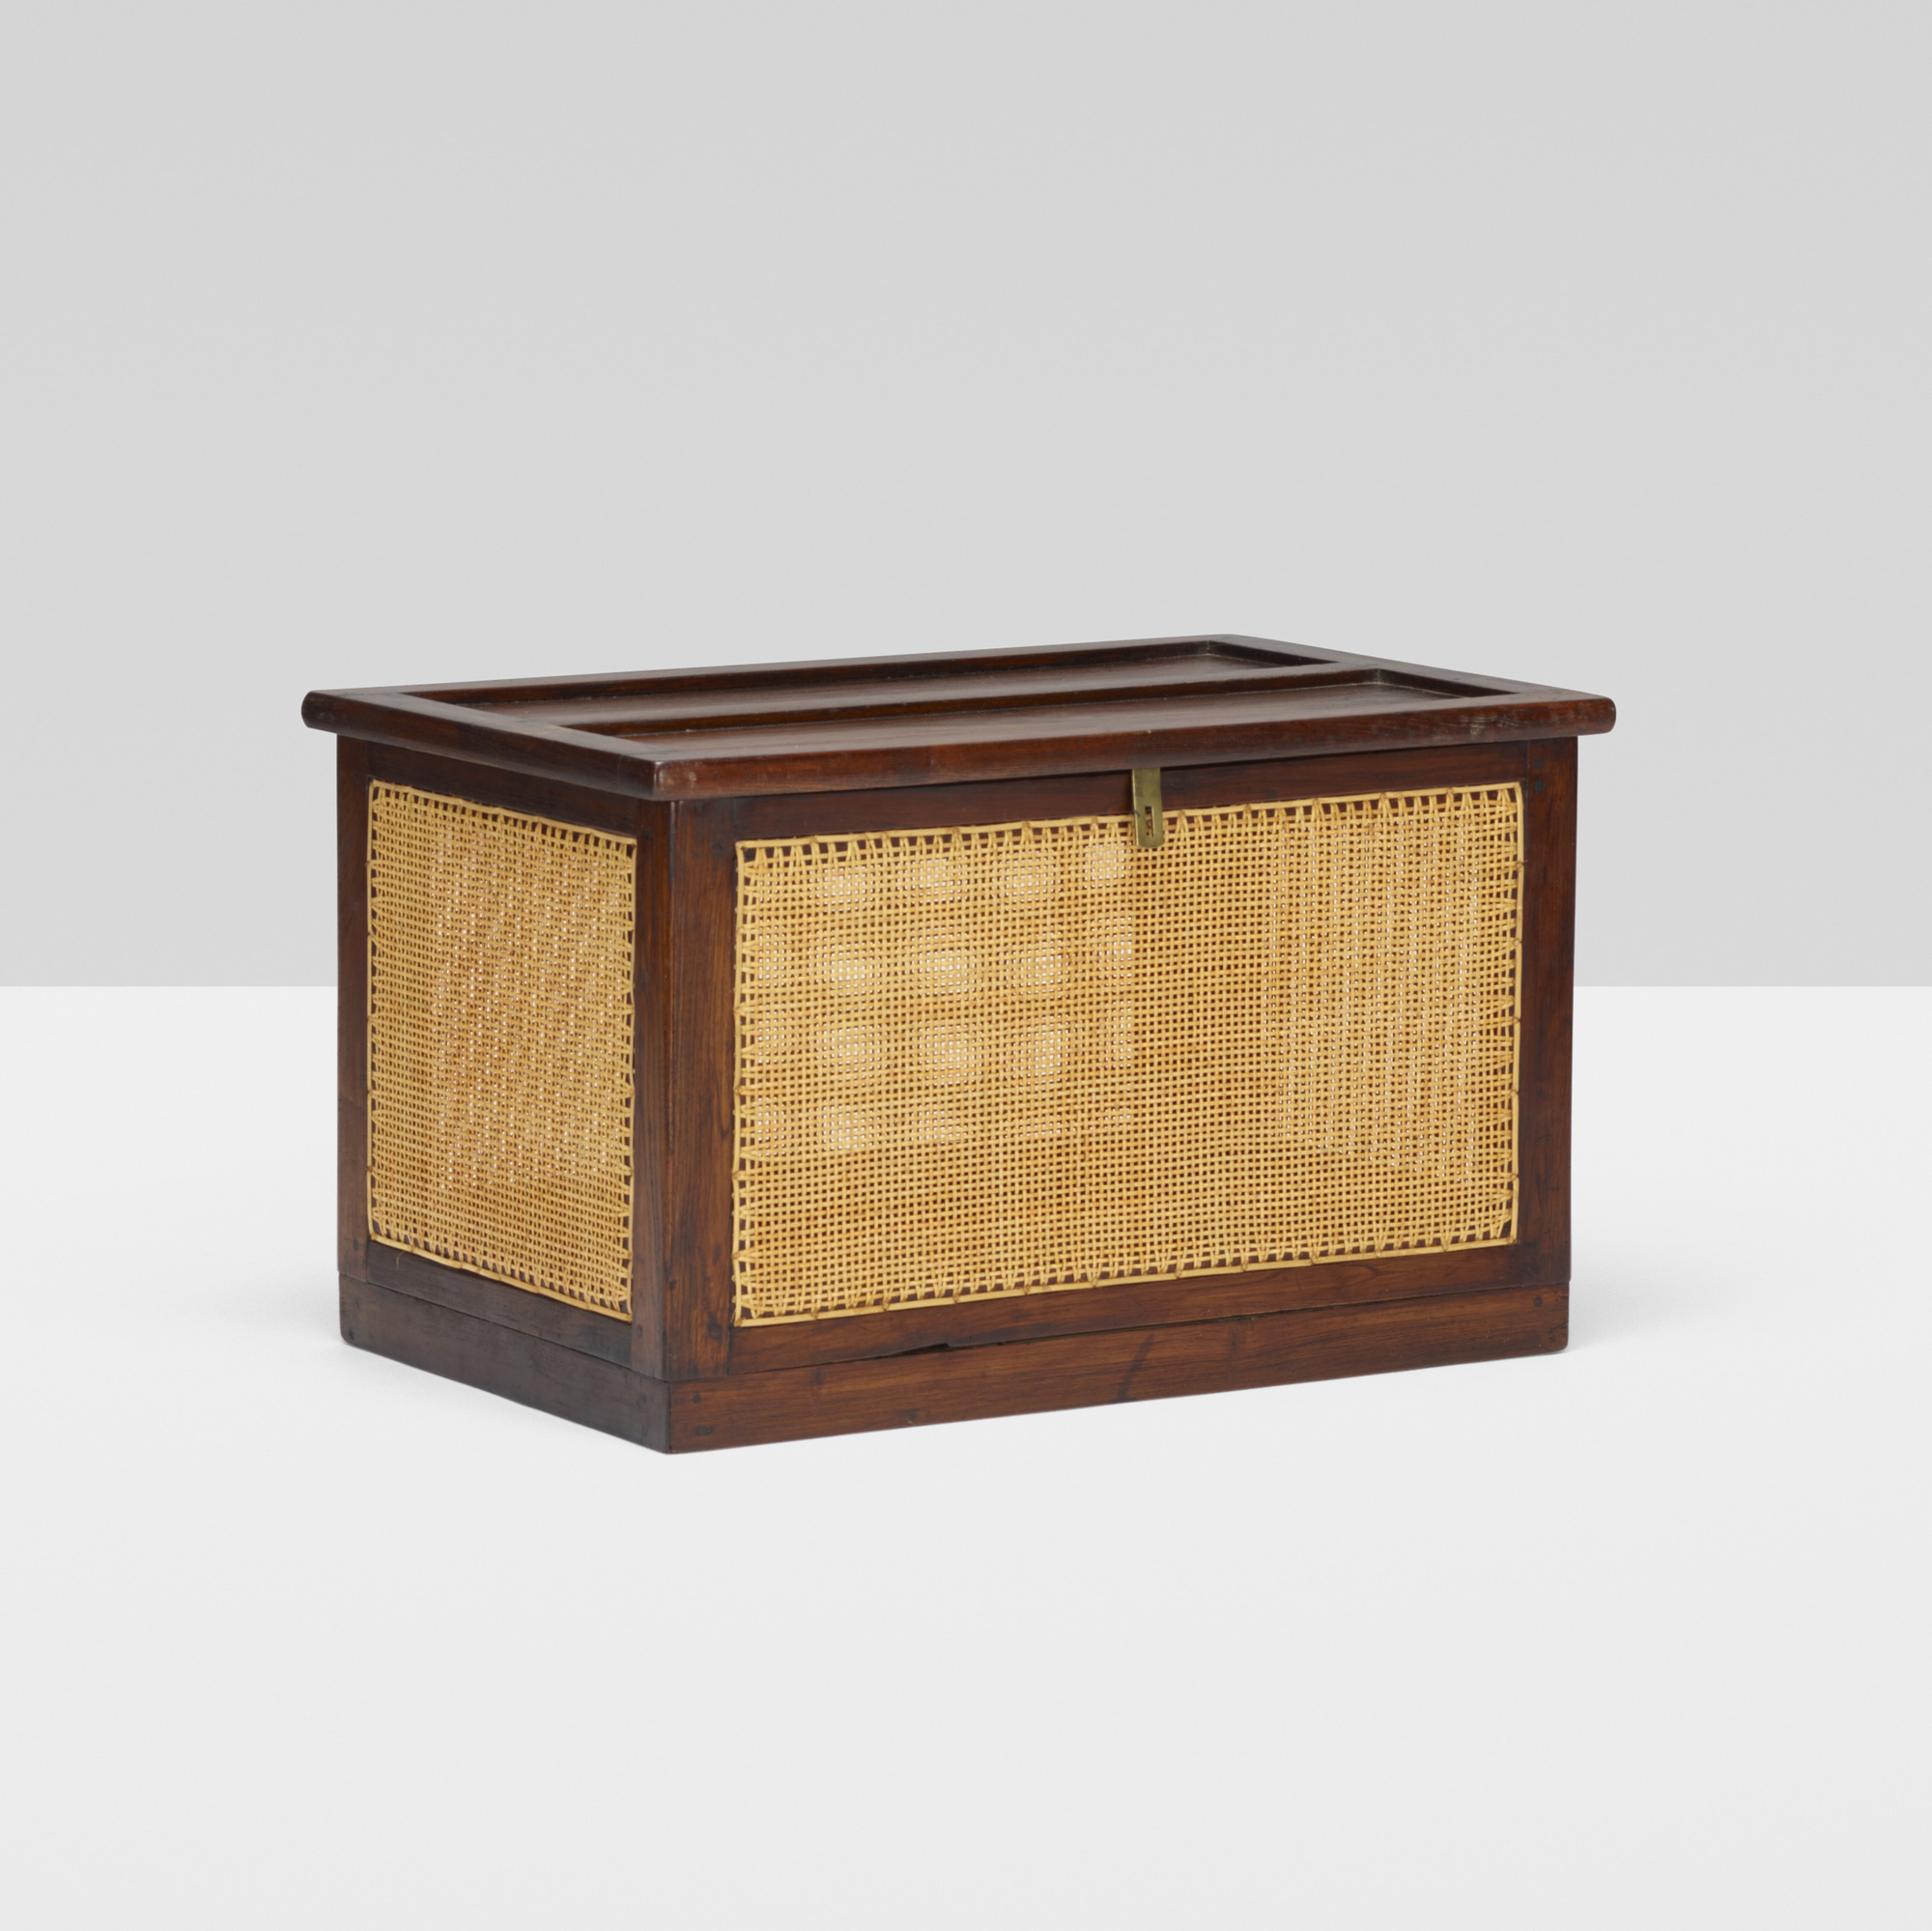 108: Pierre Jeanneret / linen chest from the M.L.A. Flats building, Chandigarh (1 of 3)